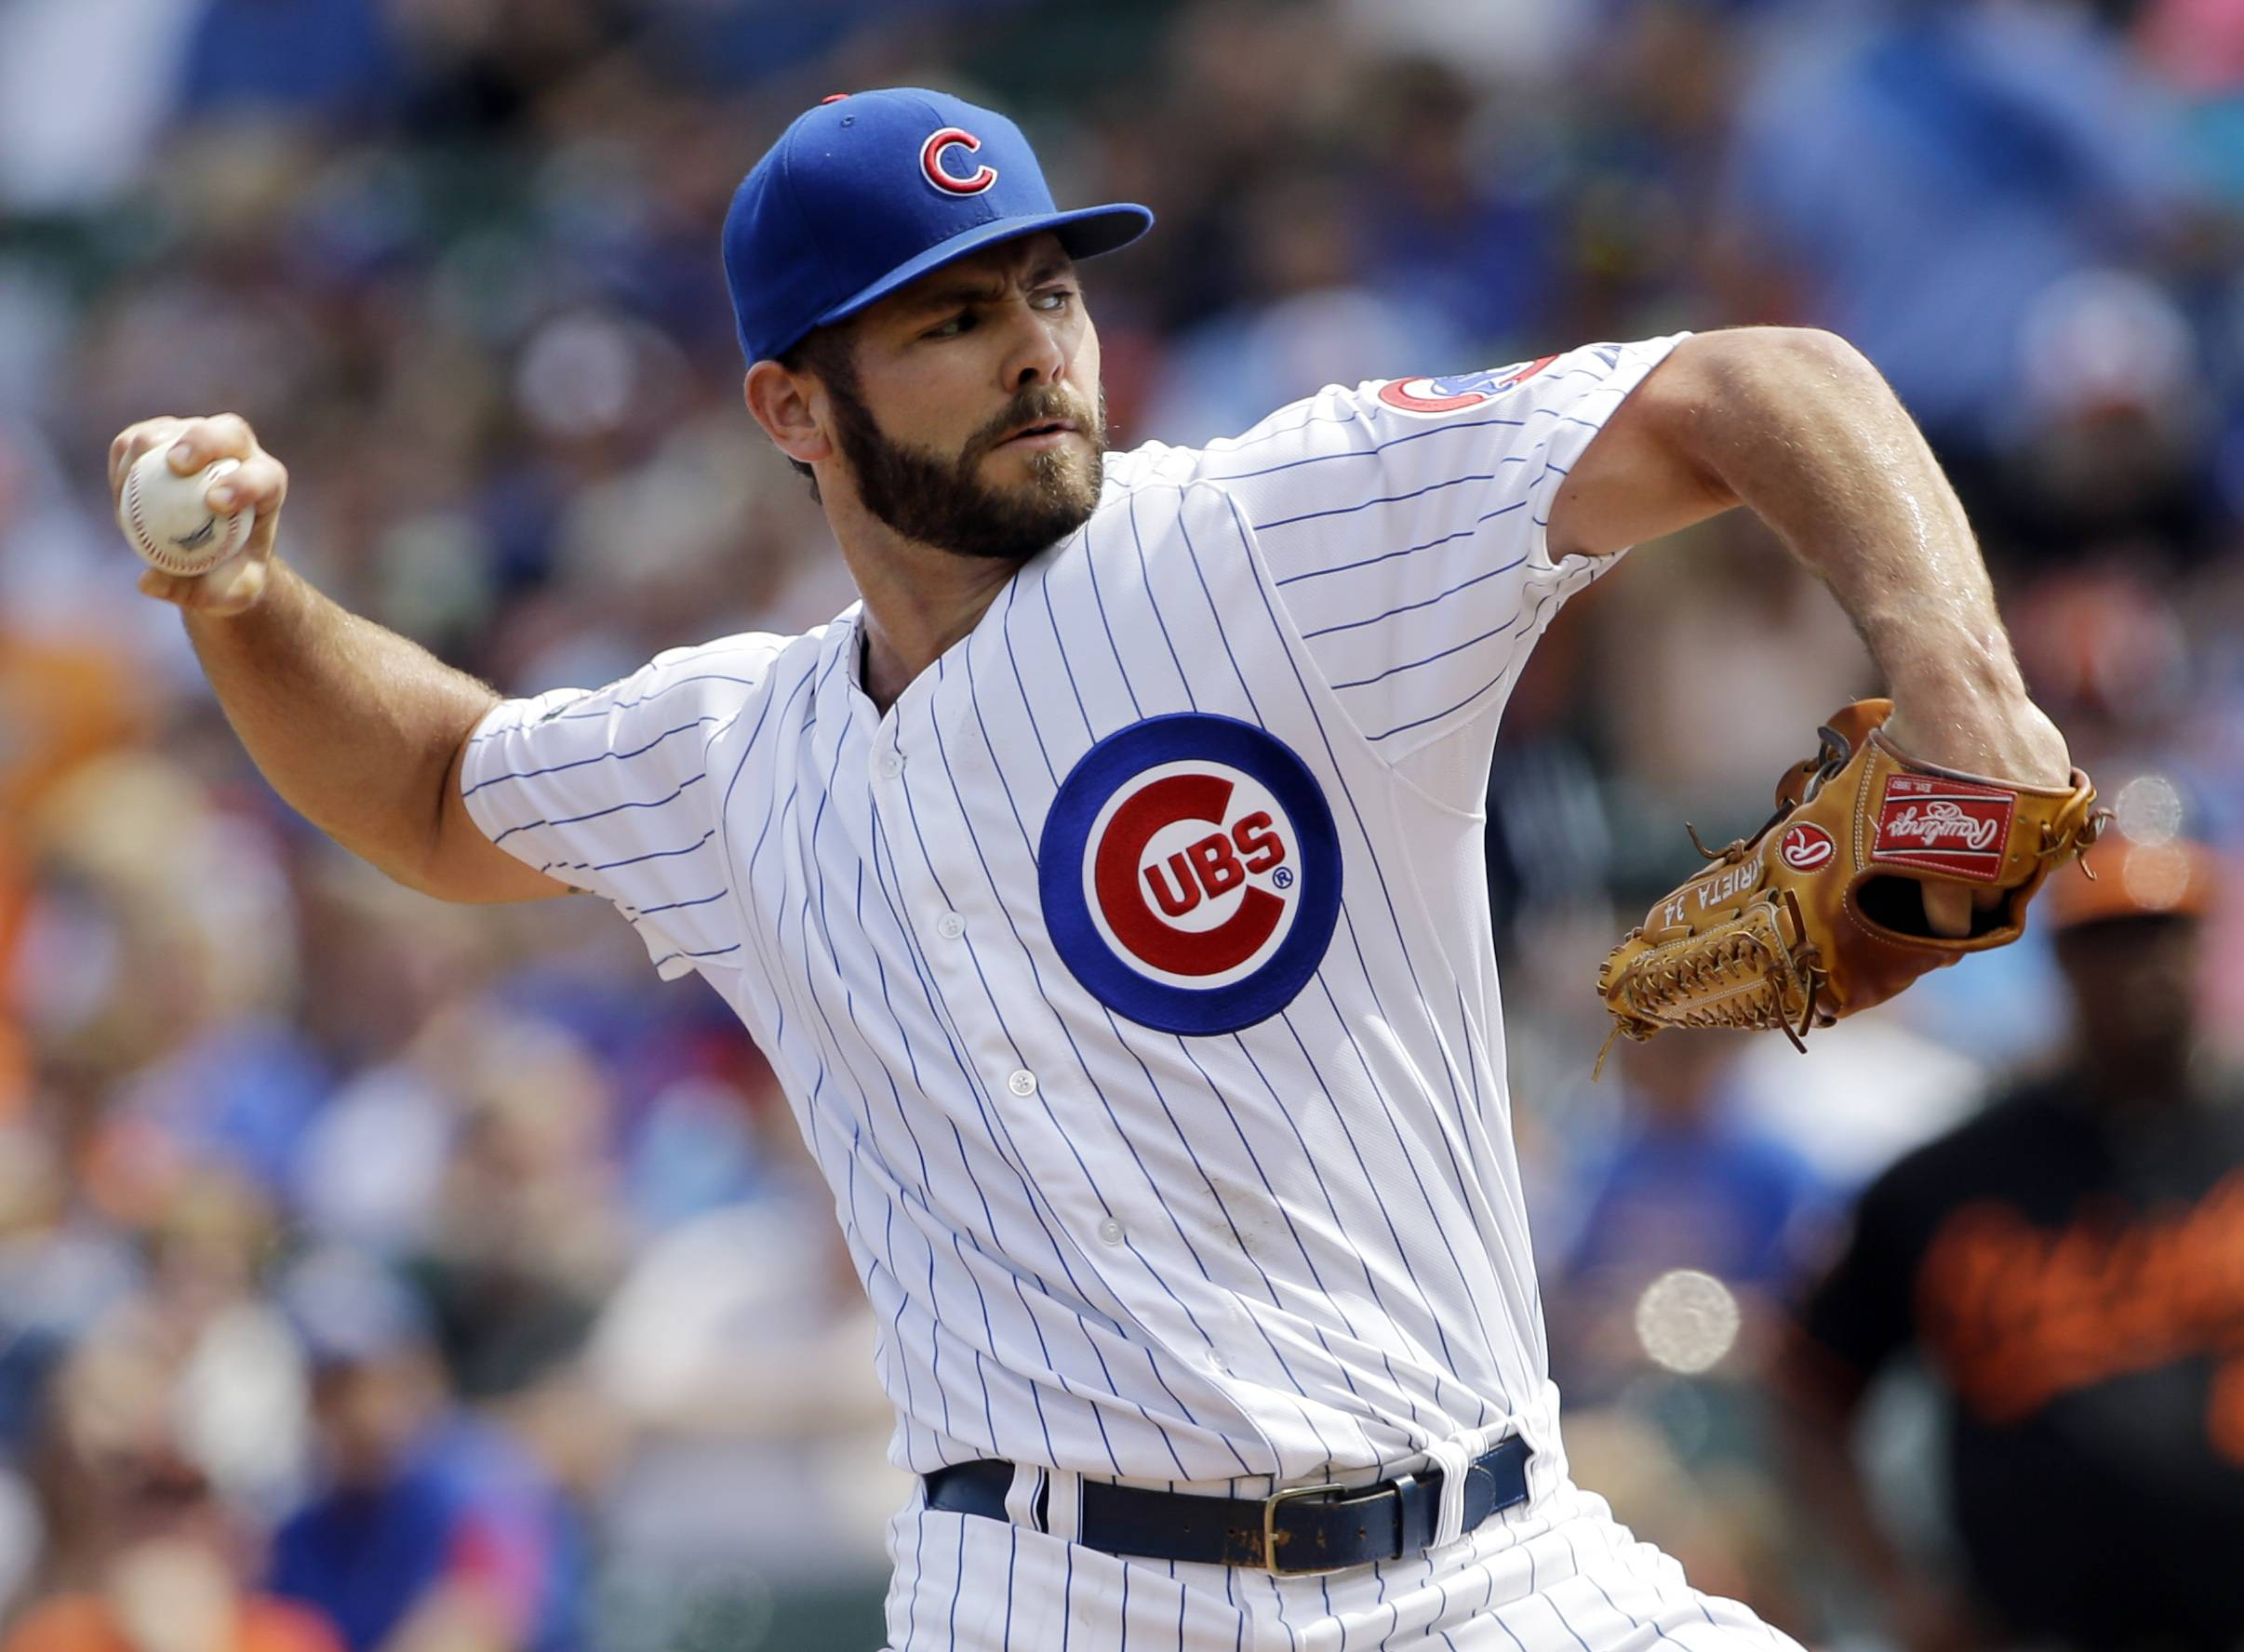 Chicago Cubs starter Jake Arrieta throws against the Baltimore Orioles during the first inning of an interleague baseball game in Chicago, Friday, Aug. 22, 2014.